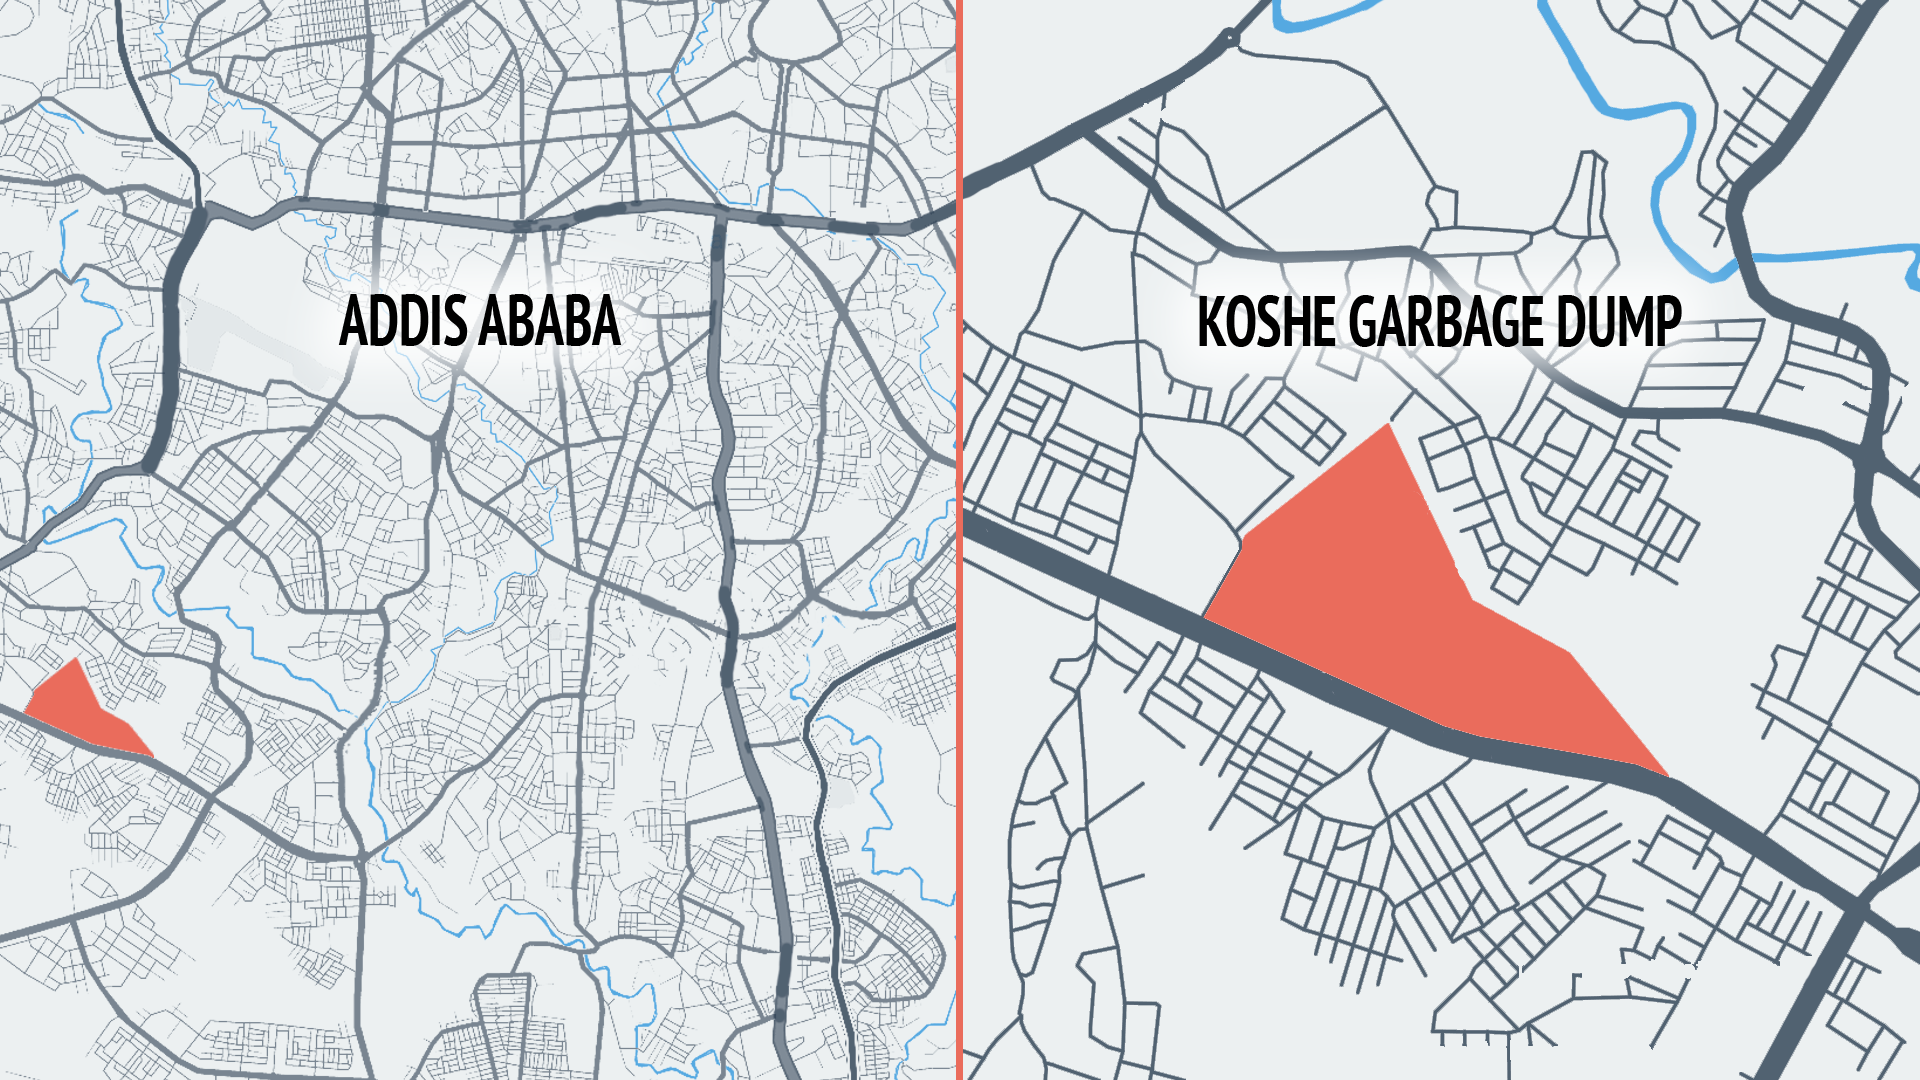 Located in Kolfe Keranio, Addis Ababa's most populous subcity, Koshe is a sprawling landfill, spanning about 1 kilometer along its longest side.